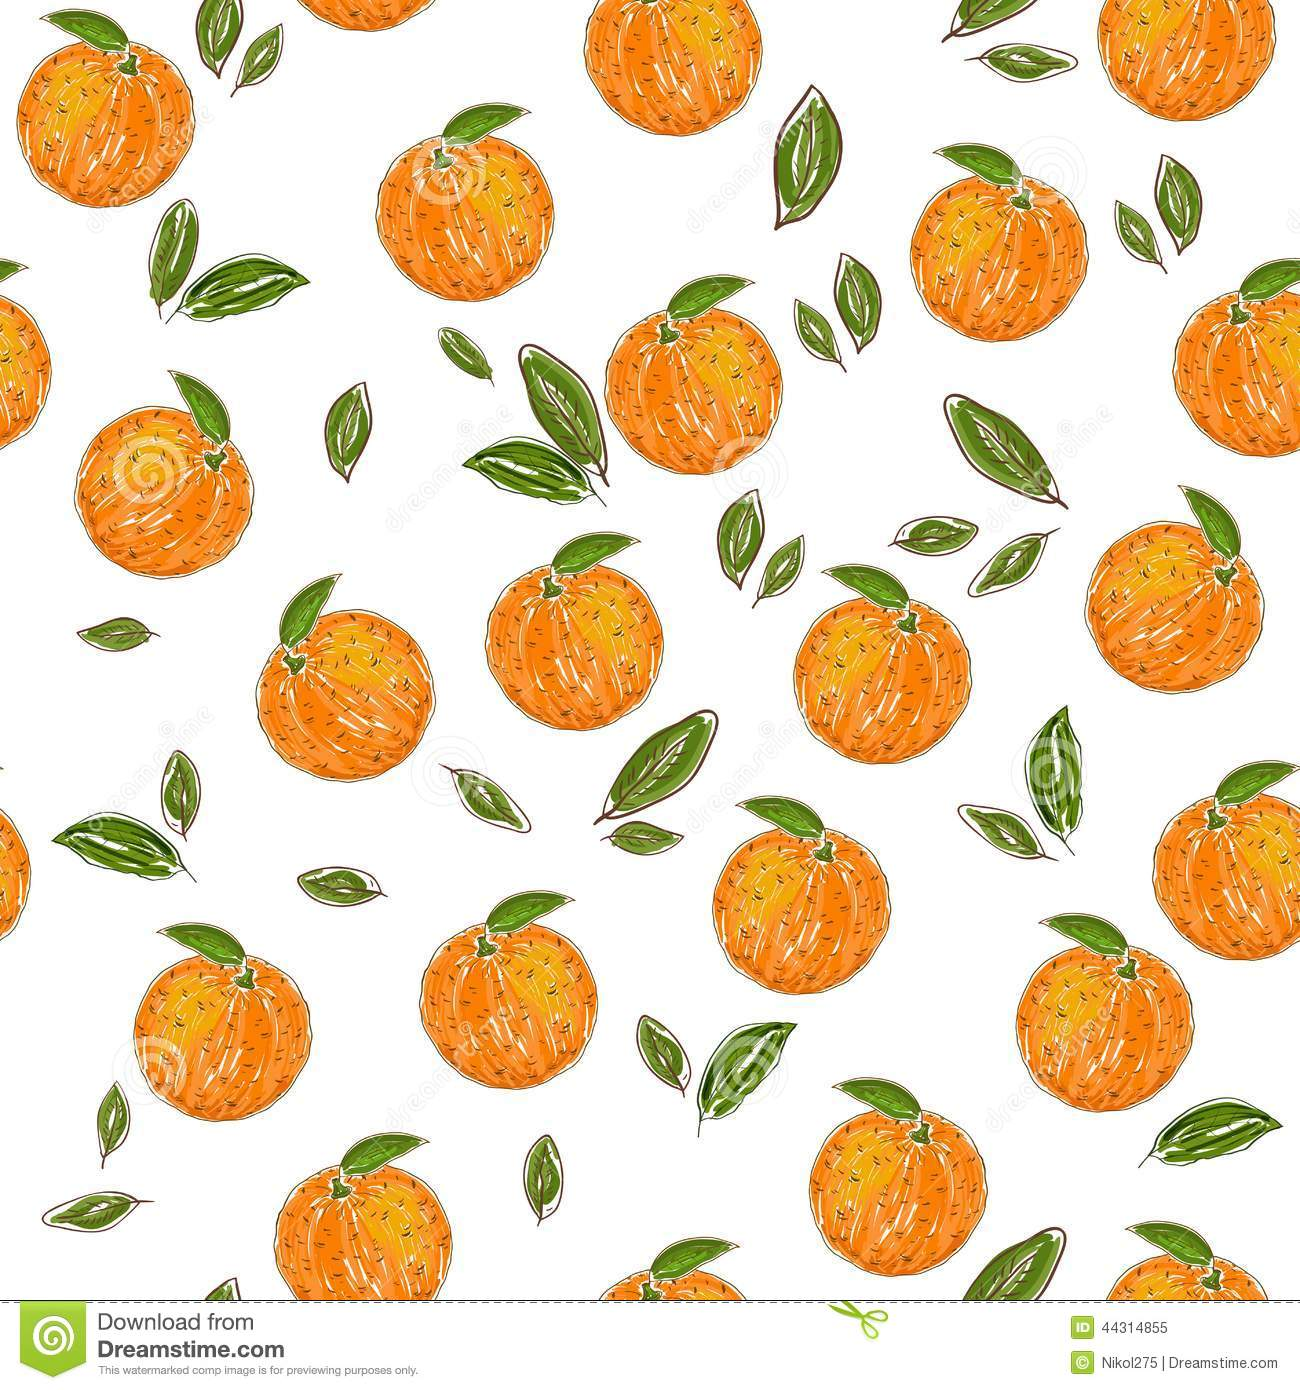 Orange Fruit Pattern Stock Vector - Image: 44314855